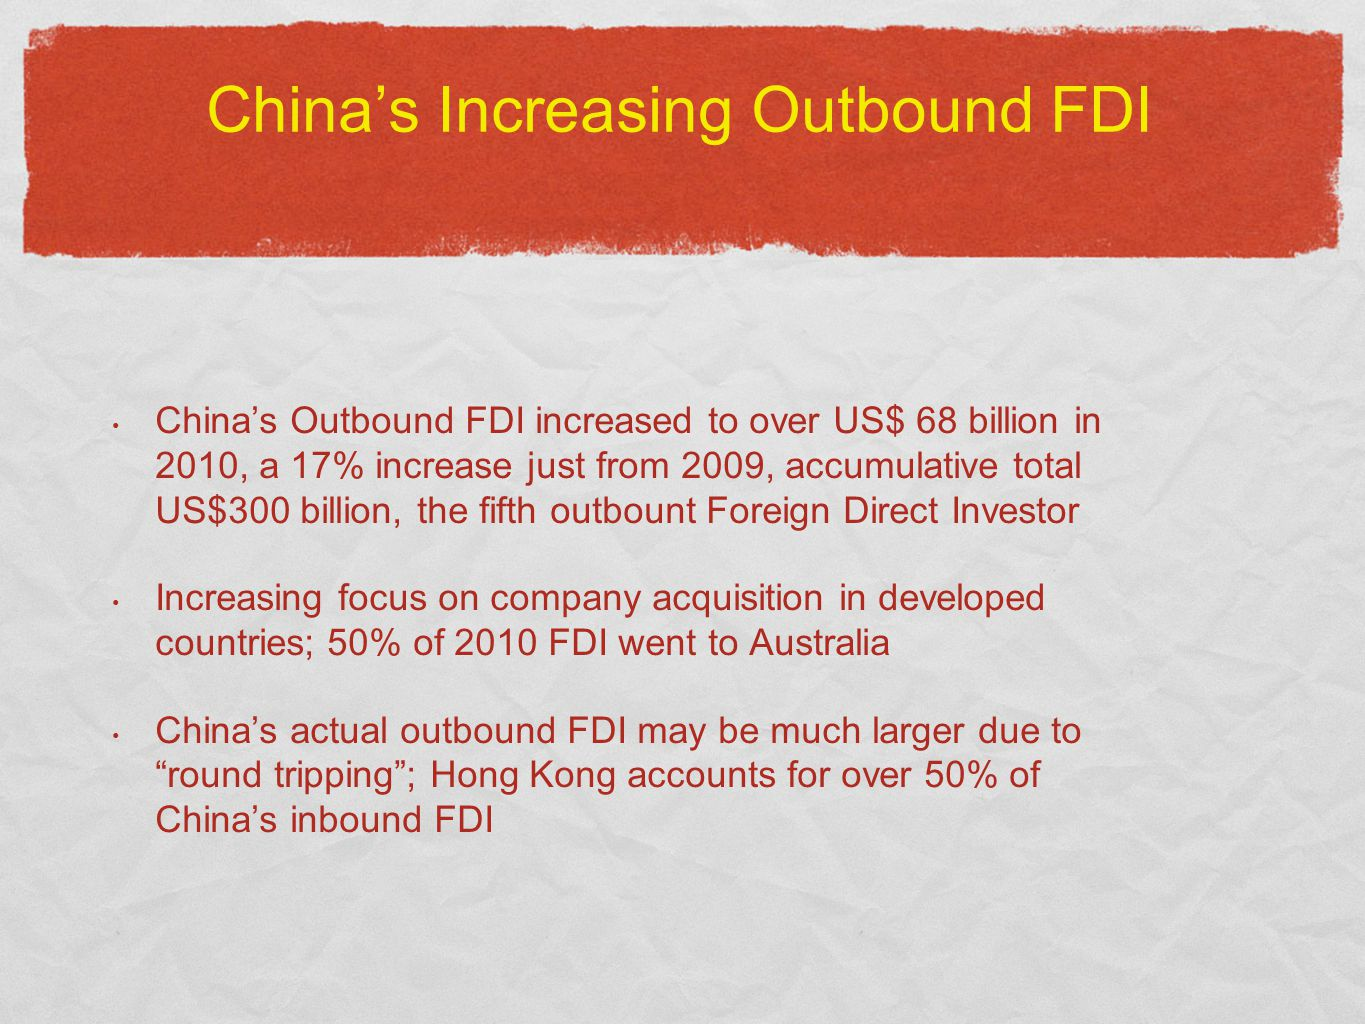 China's Increasing Outbound FDI China's Outbound FDI increased to over US$ 68 billion in 2010, a 17% increase just from 2009, accumulative total US$300 billion, the fifth outbount Foreign Direct Investor Increasing focus on company acquisition in developed countries; 50% of 2010 FDI went to Australia China's actual outbound FDI may be much larger due to round tripping ; Hong Kong accounts for over 50% of China's inbound FDI